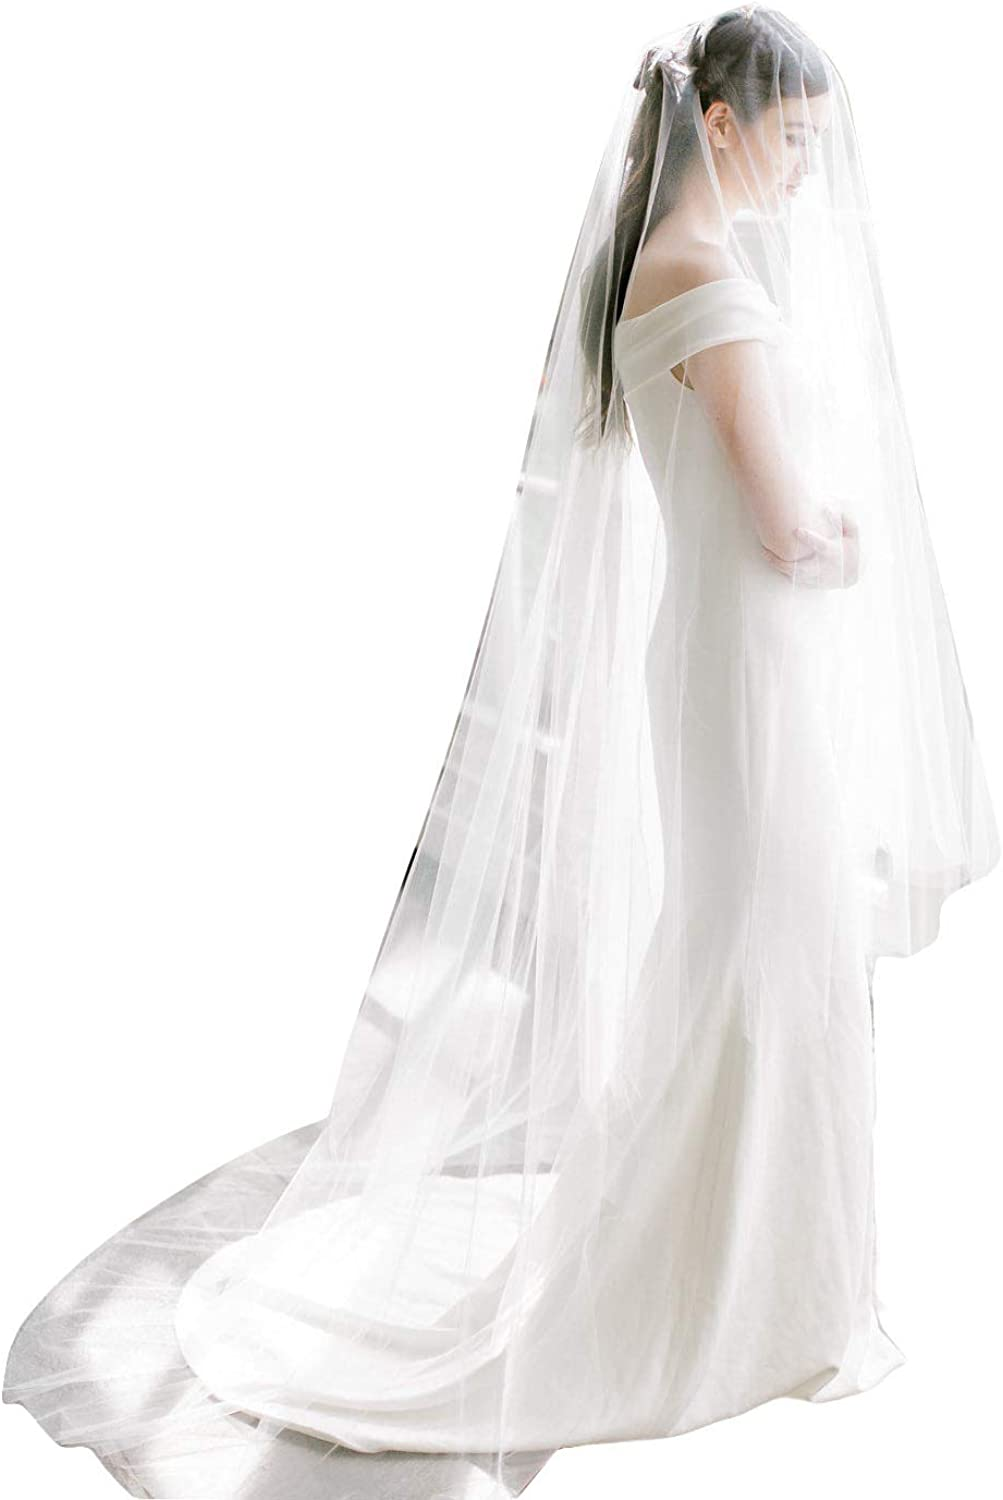 Fenghuavip 2 Tier bluesher Veils Cathedral Length Wedding Veils Tulle with Comb